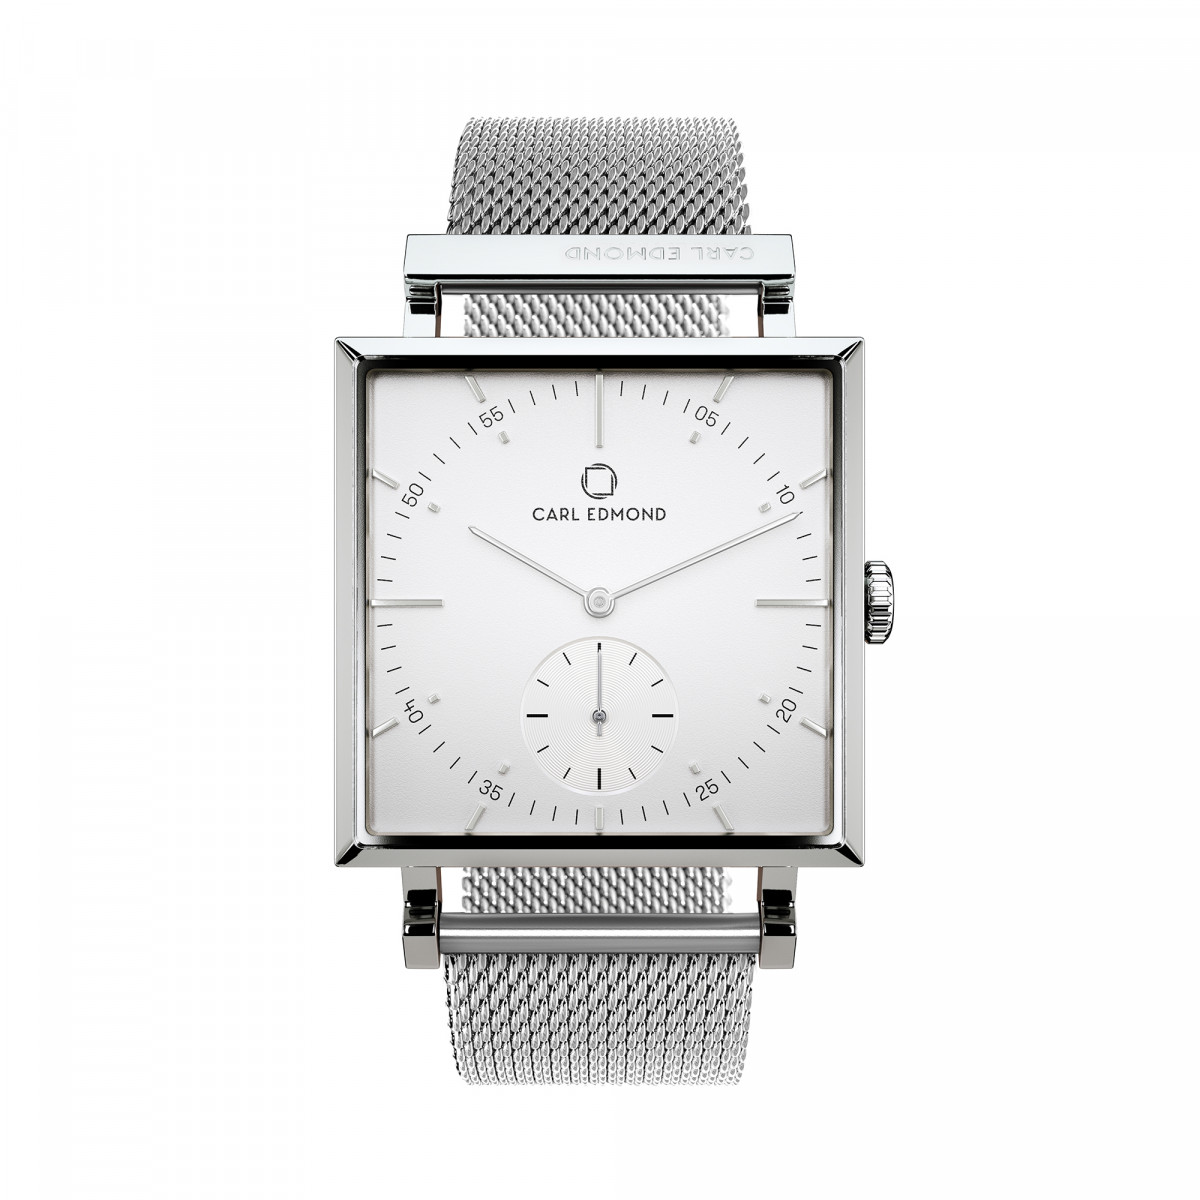 Montre Femme Carl Edmond GRANIT Blanc Silver G2901-MS18 29 mm - Mouvement Suisse